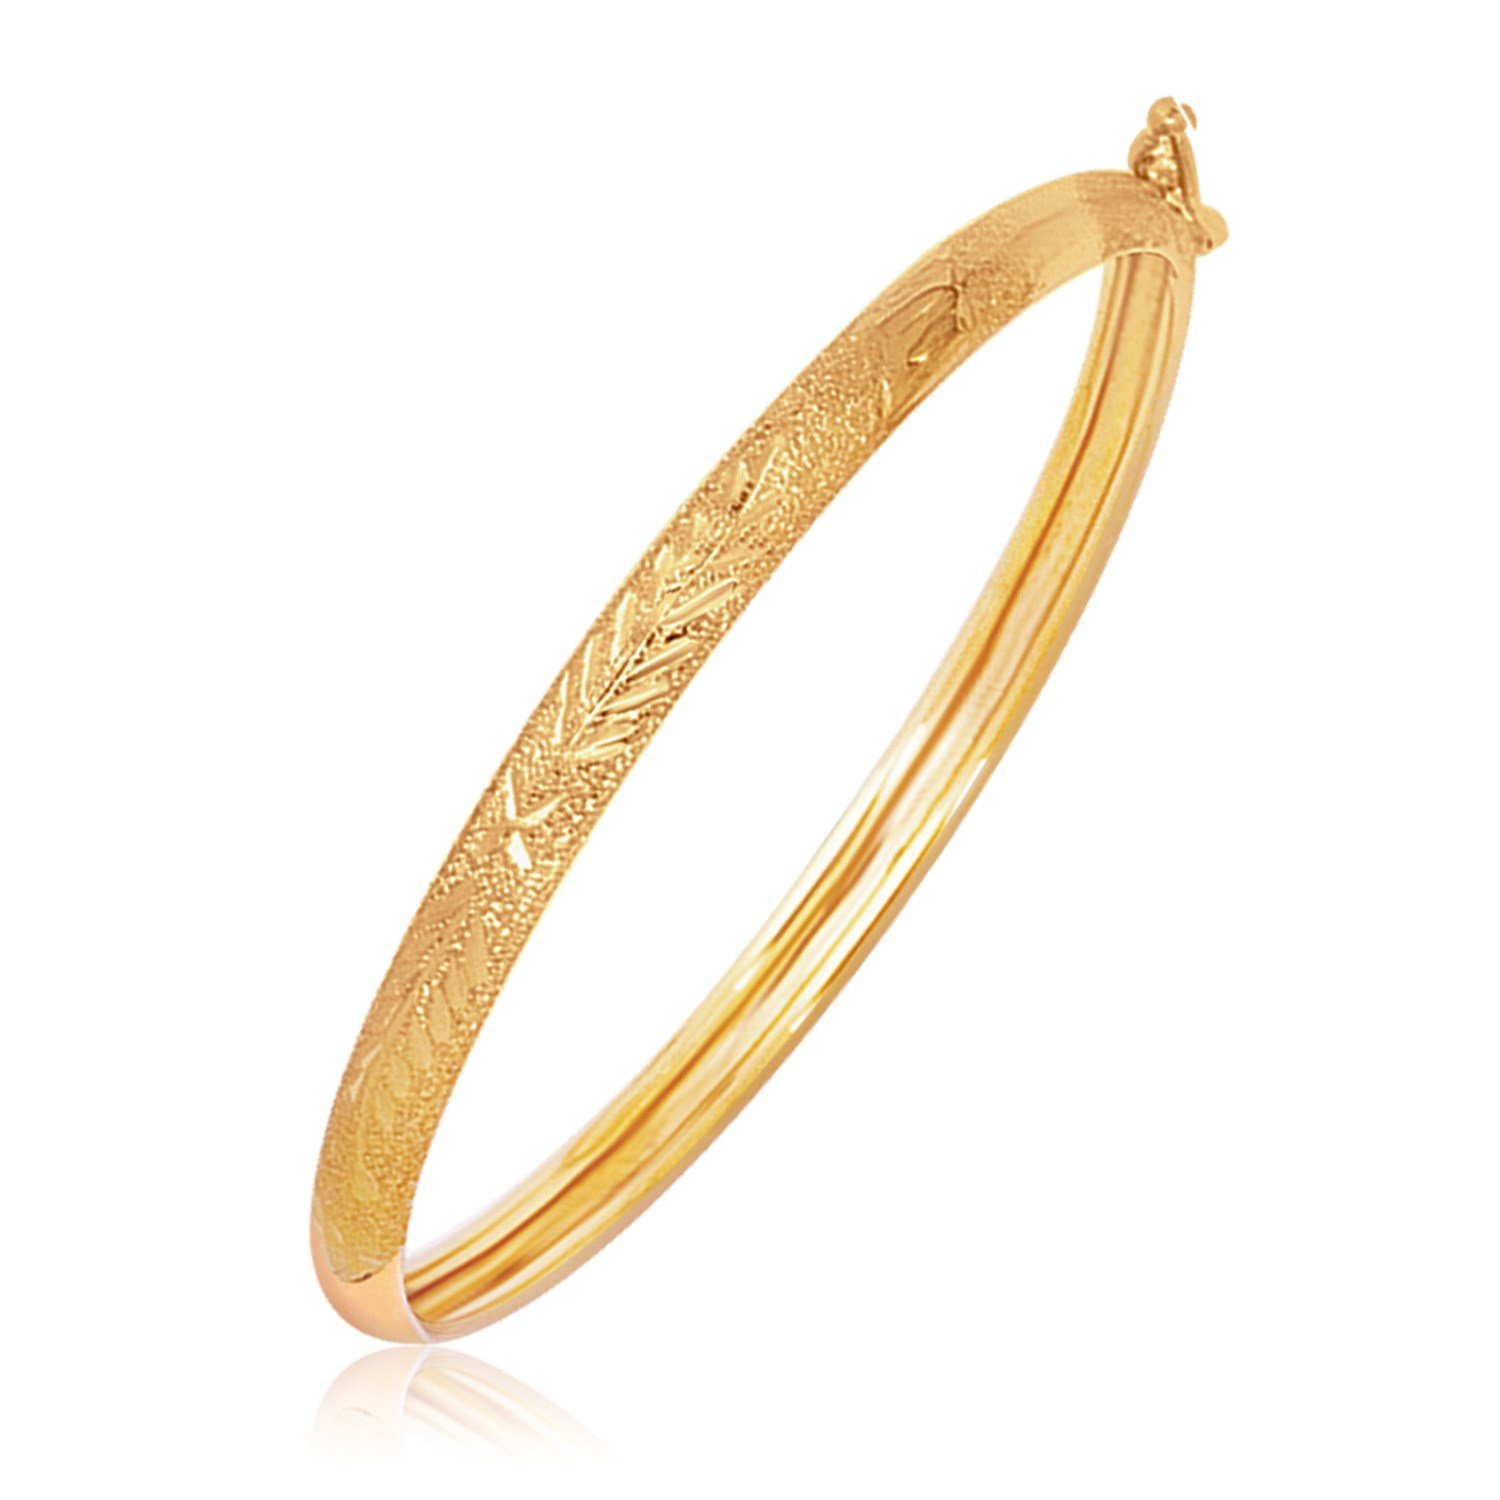 Jewels By Lux 14k Yellow Gold Diamond Cut Motif Dome Style Childrens Bangle